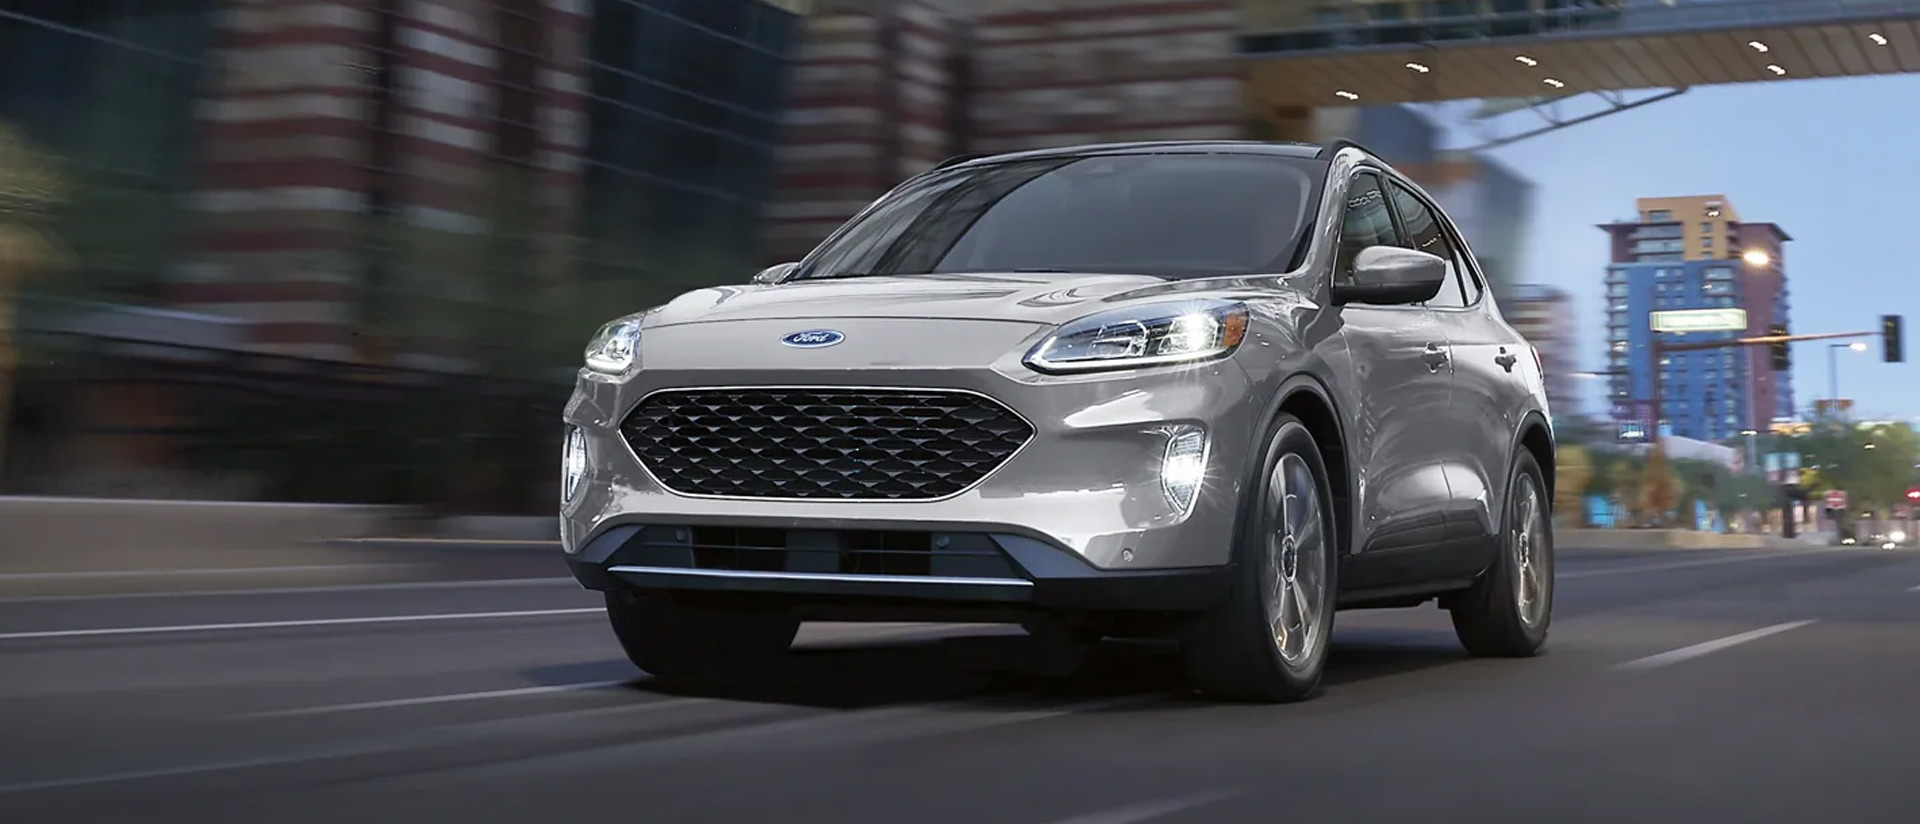 2021 Ford Escape dirving down a city street